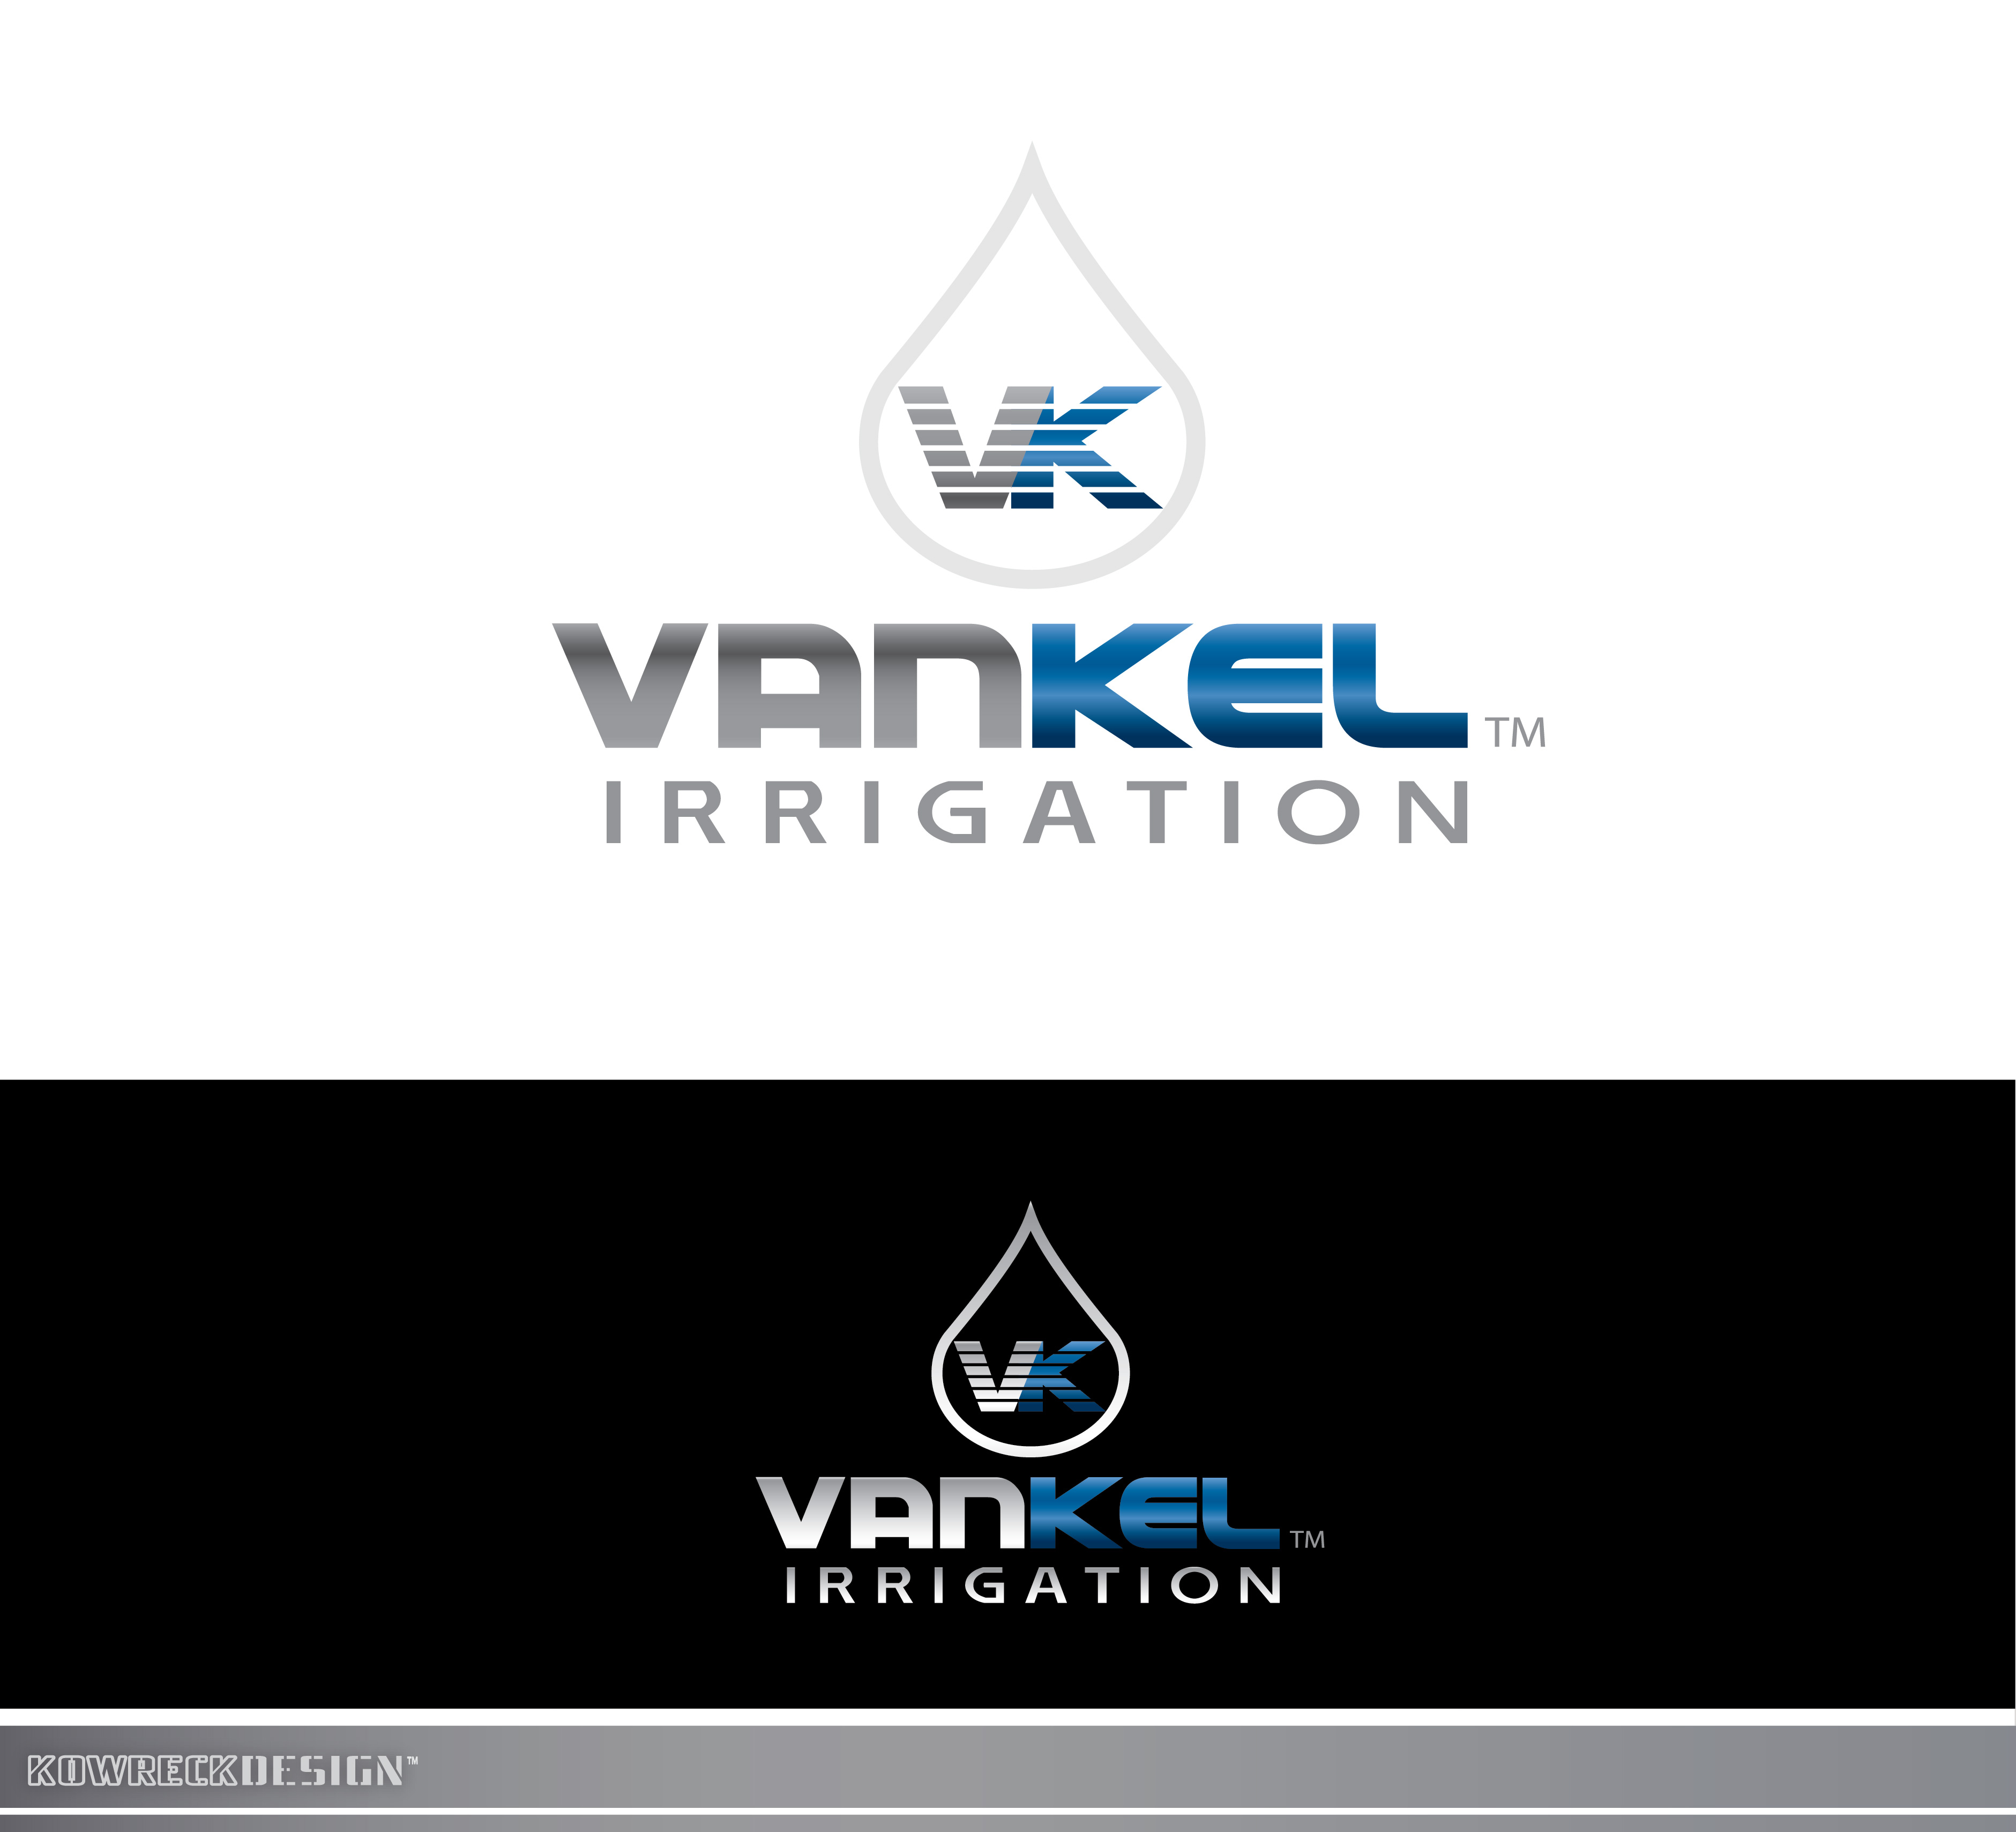 Logo Design by kowreck - Entry No. 319 in the Logo Design Contest Van-Kel Irrigation Logo Design.